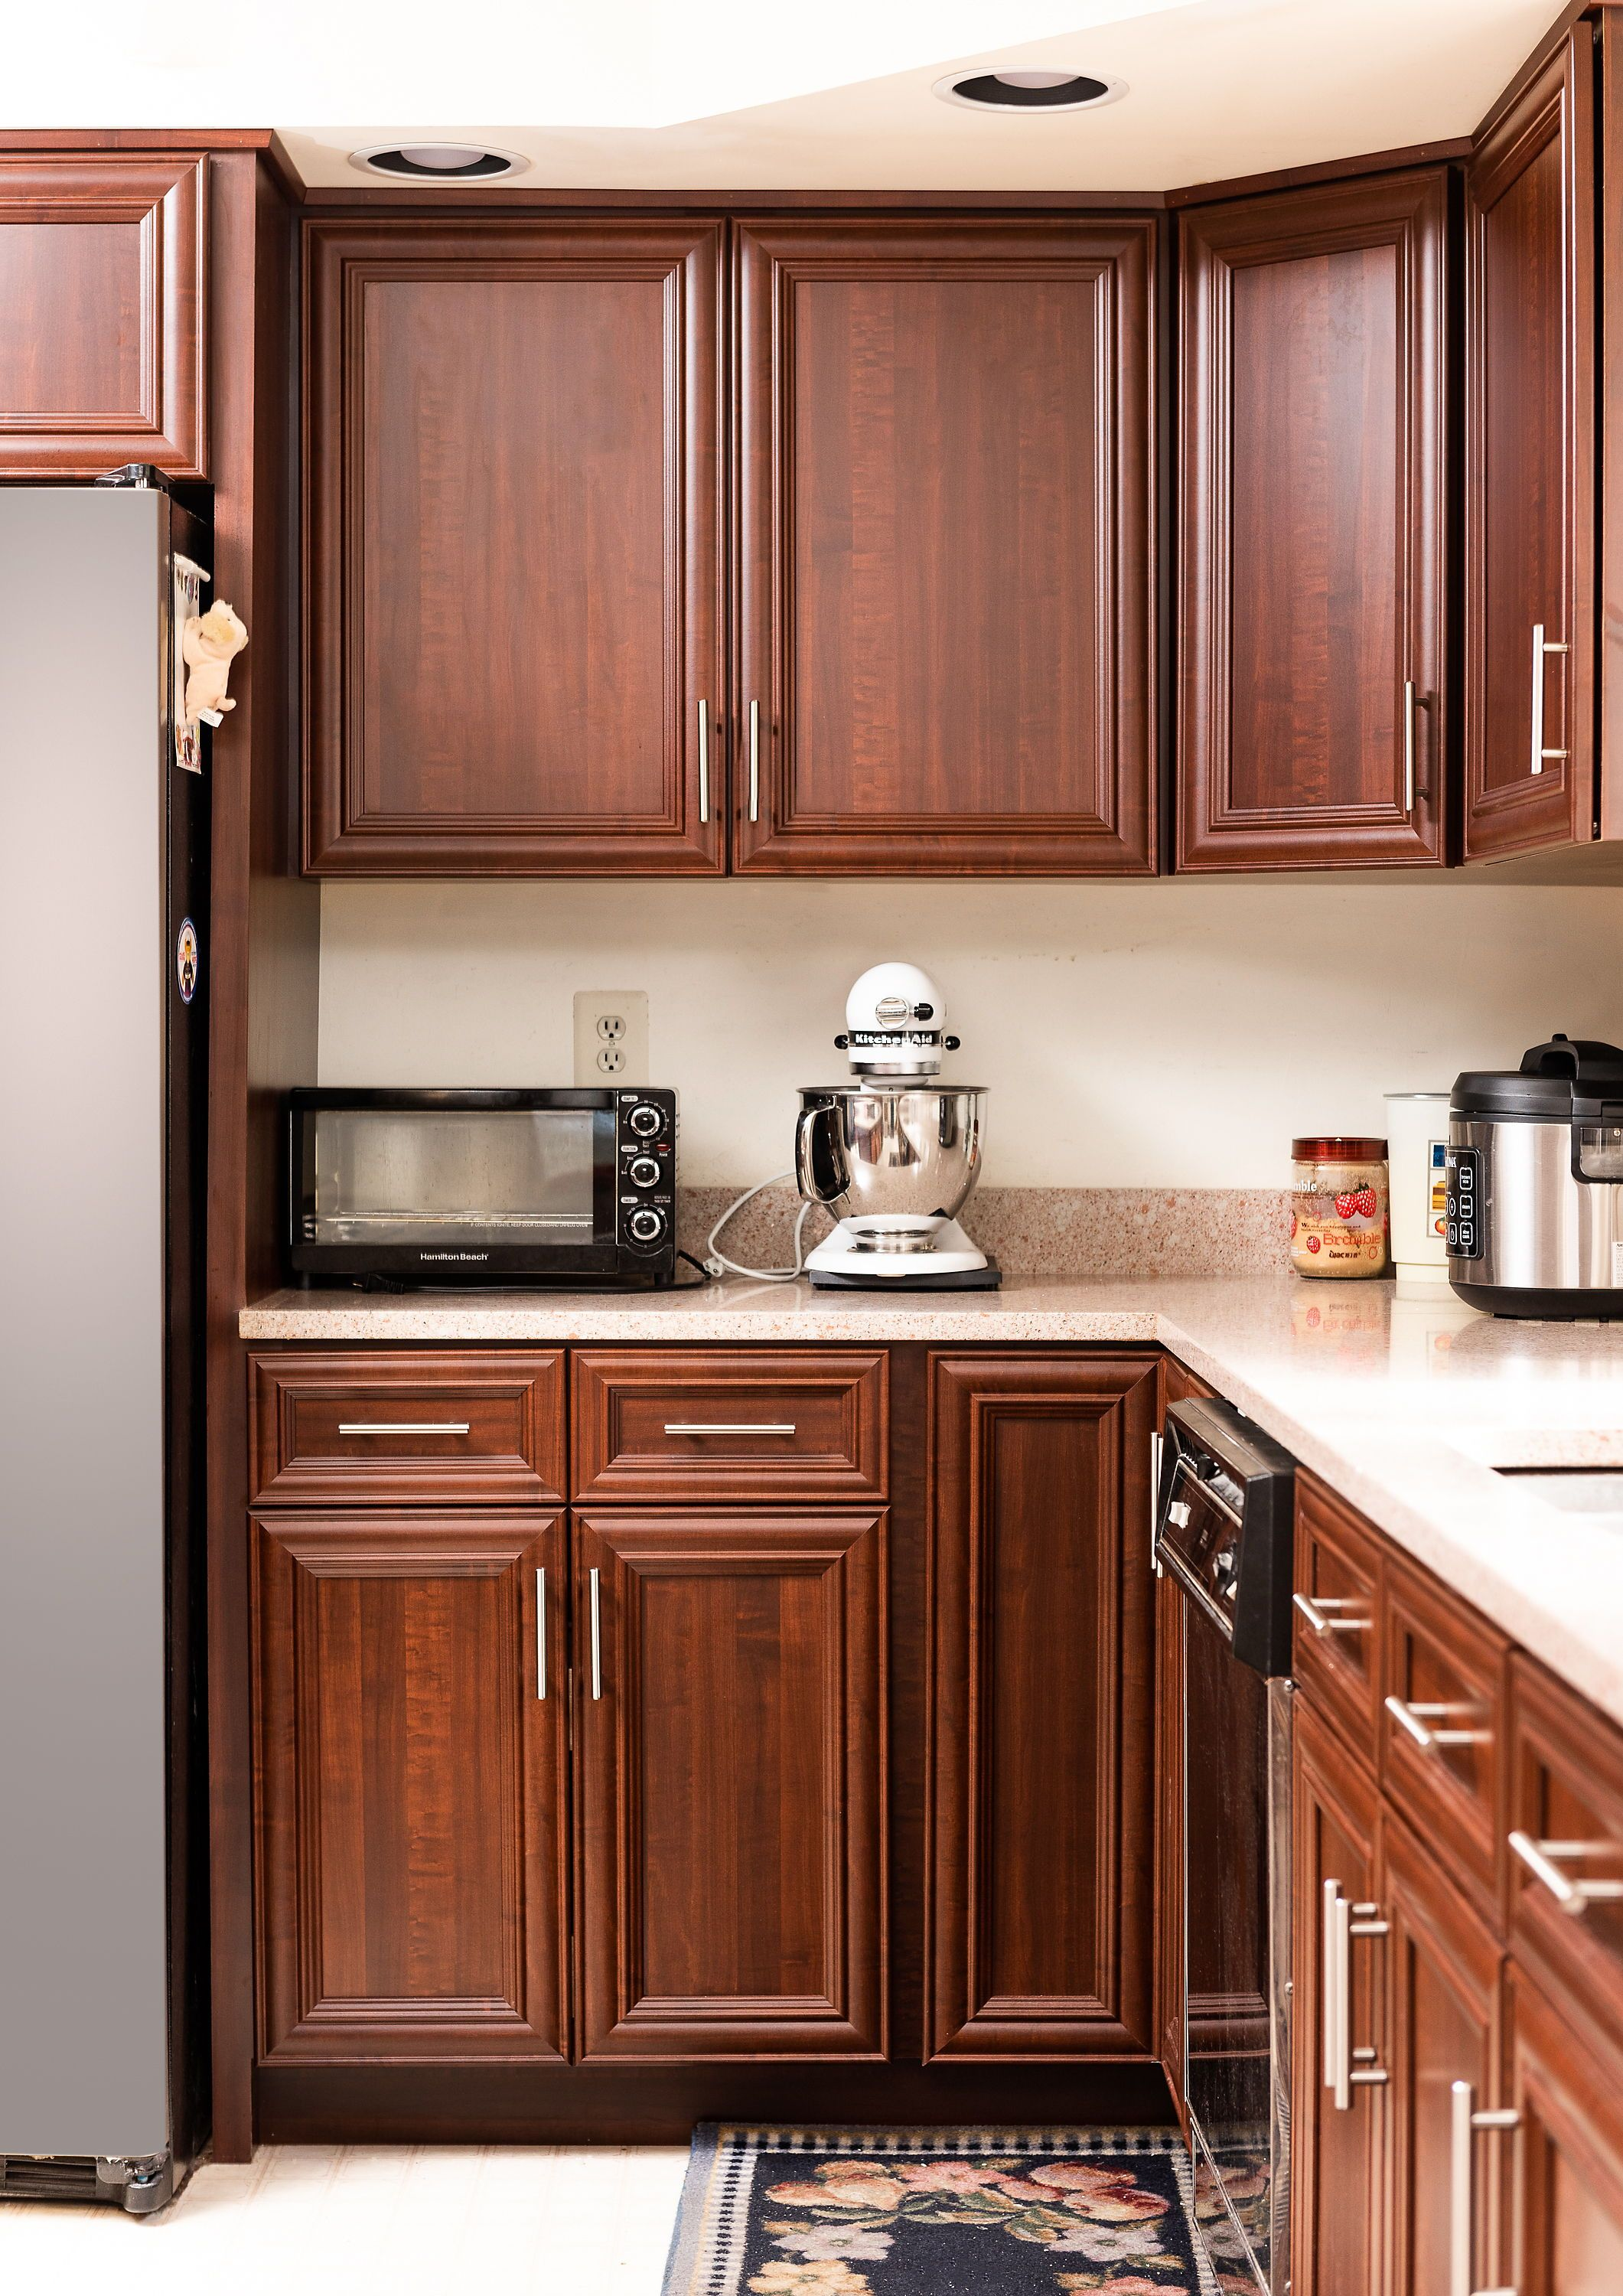 Kitchen Saver Transform Your Kitchen Affordably Custom Kitchen Cabinets Refacing Kitchen Cabinets Kitchen